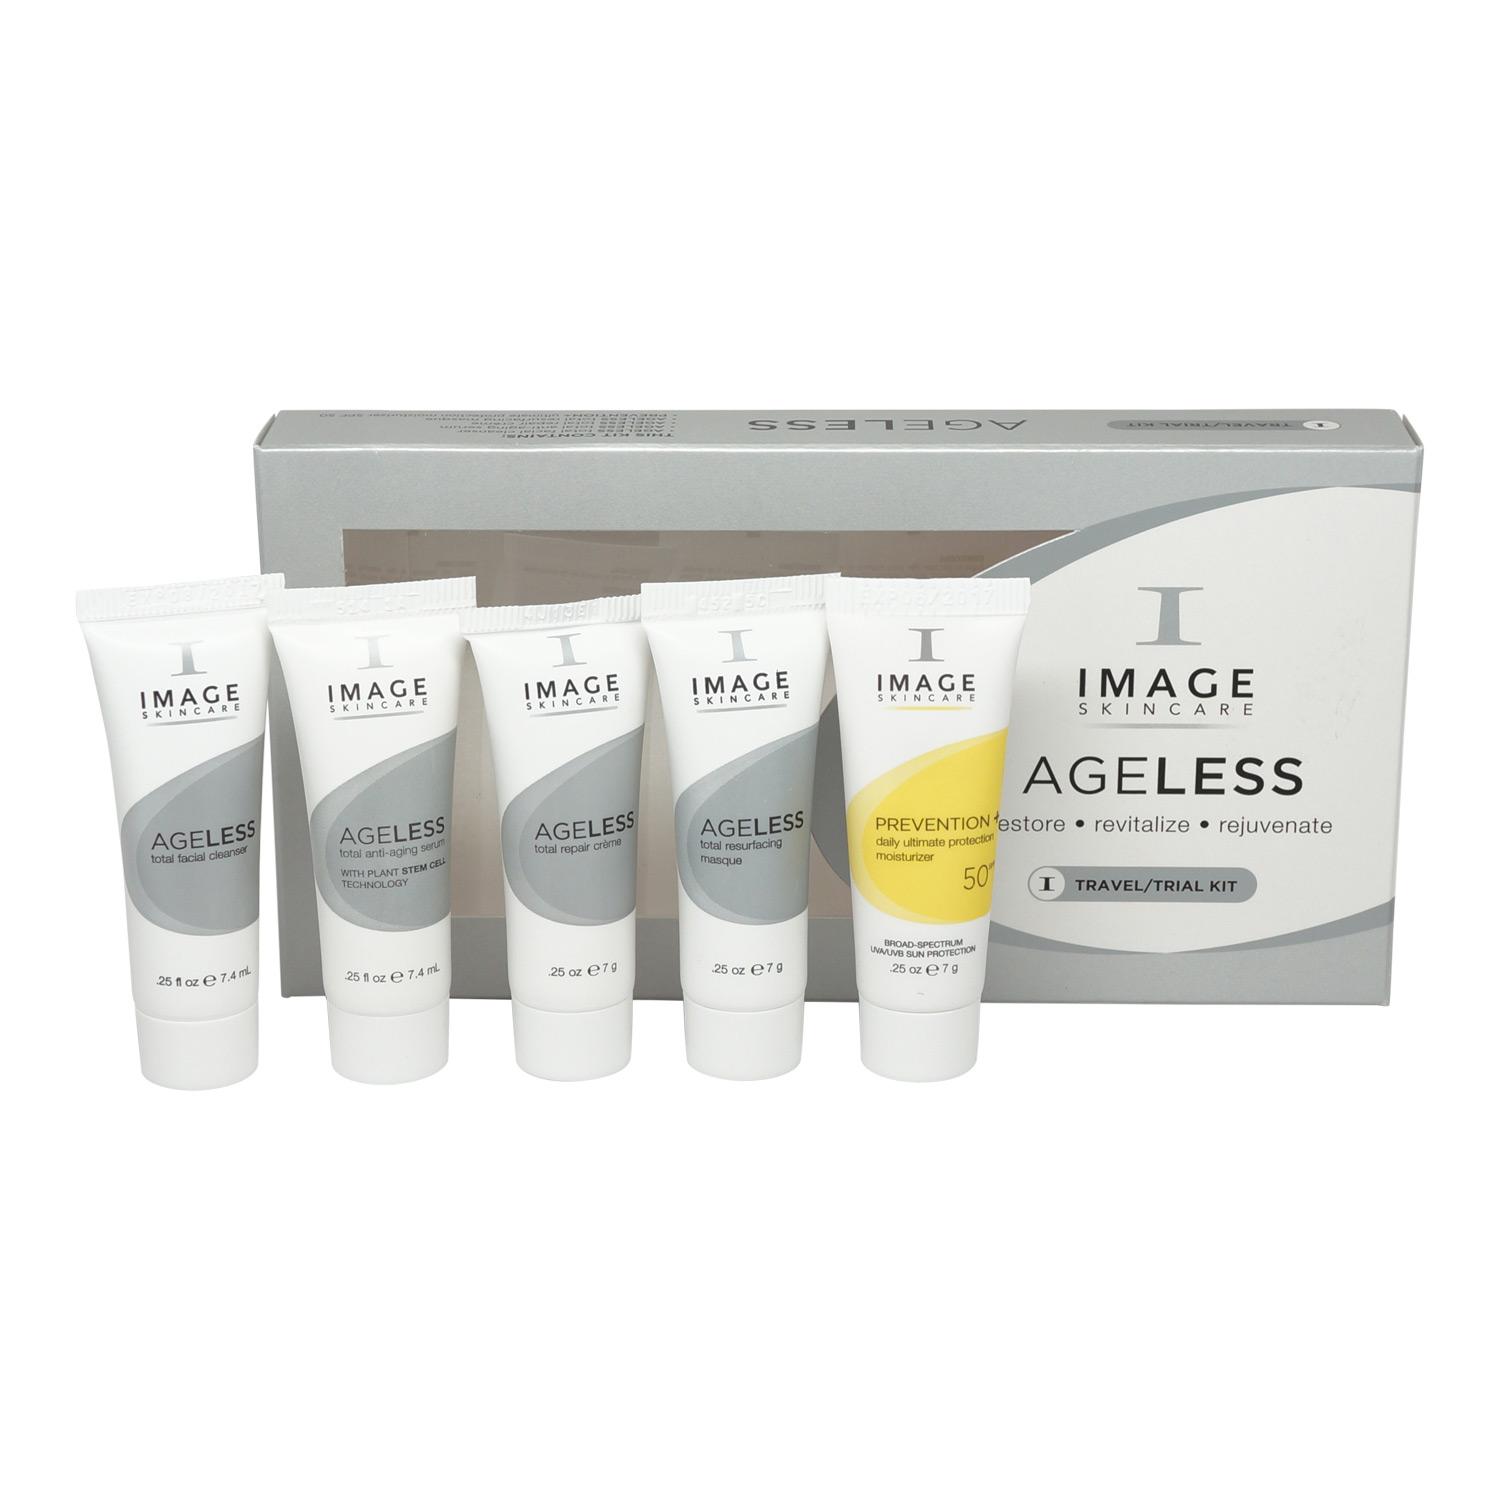 Image Ageless Travel Kit Total Facial Cleanser, Total Anti-Aging Serum, Total Repair Creme, Total Resurfacing Masque, Prevention+ Ultimate Protection Moisturizer SPF 50 – 4 x 0.25 oz